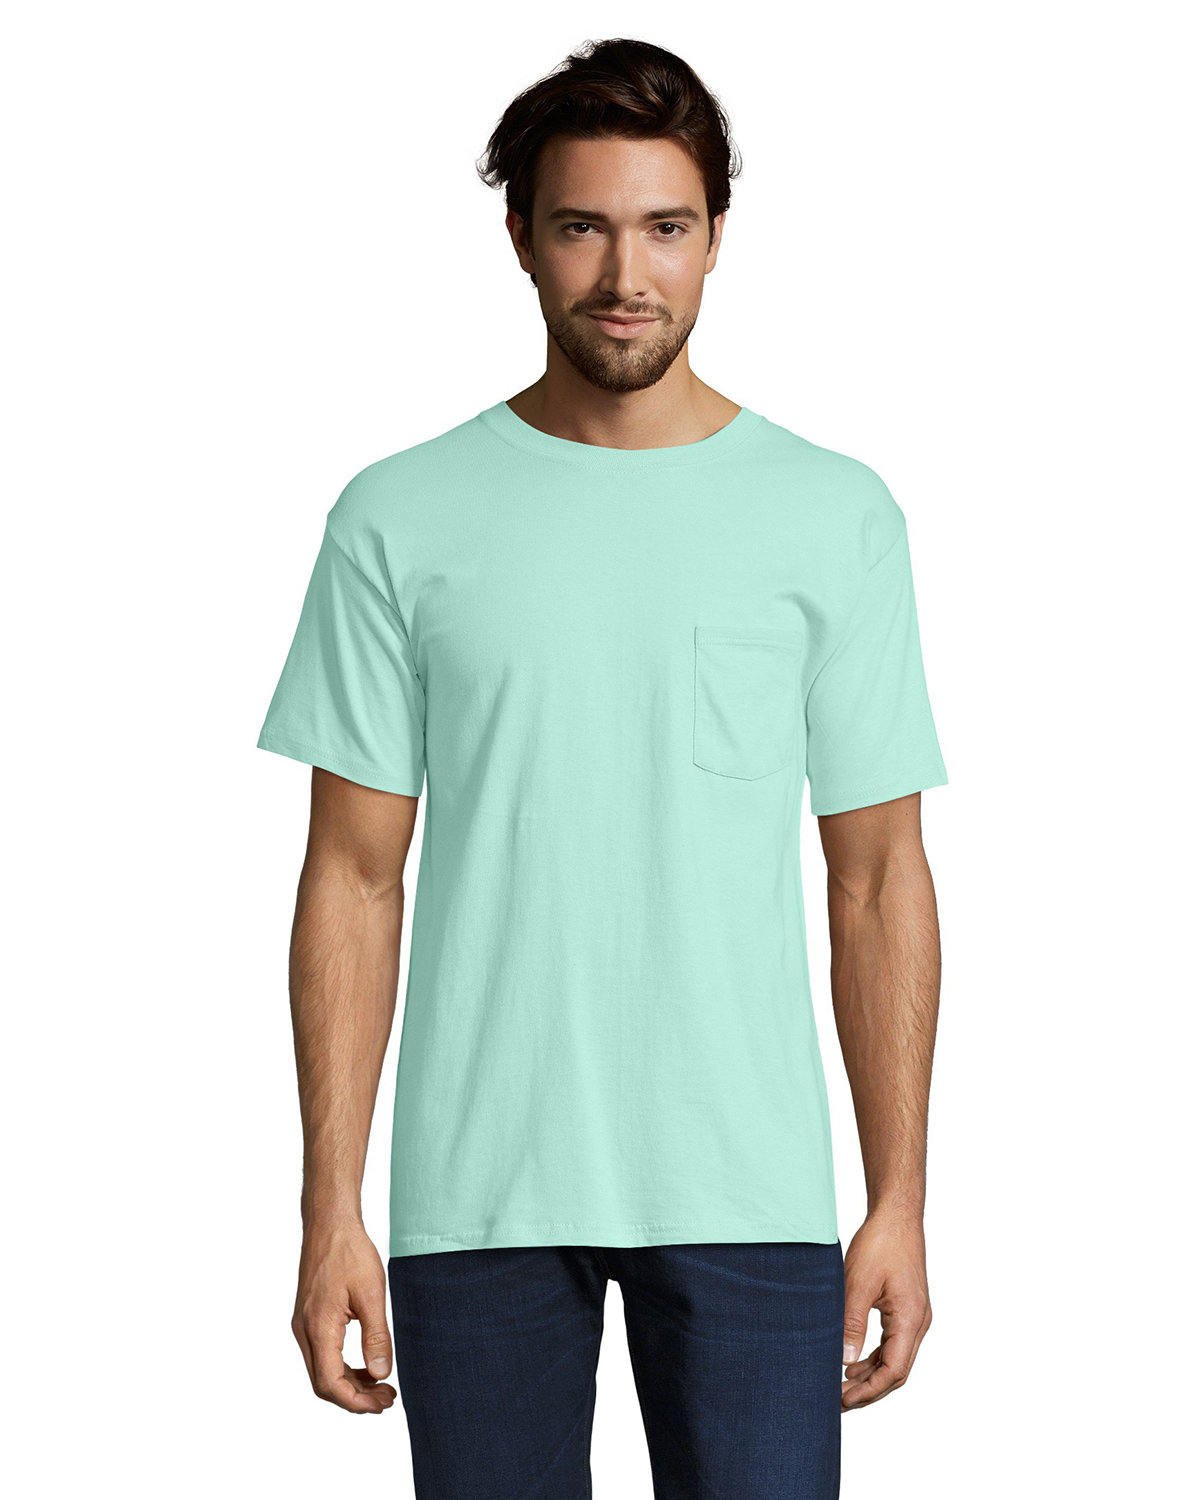 Hanes Adult Beefy-T® with Pocket CLEAN MINT